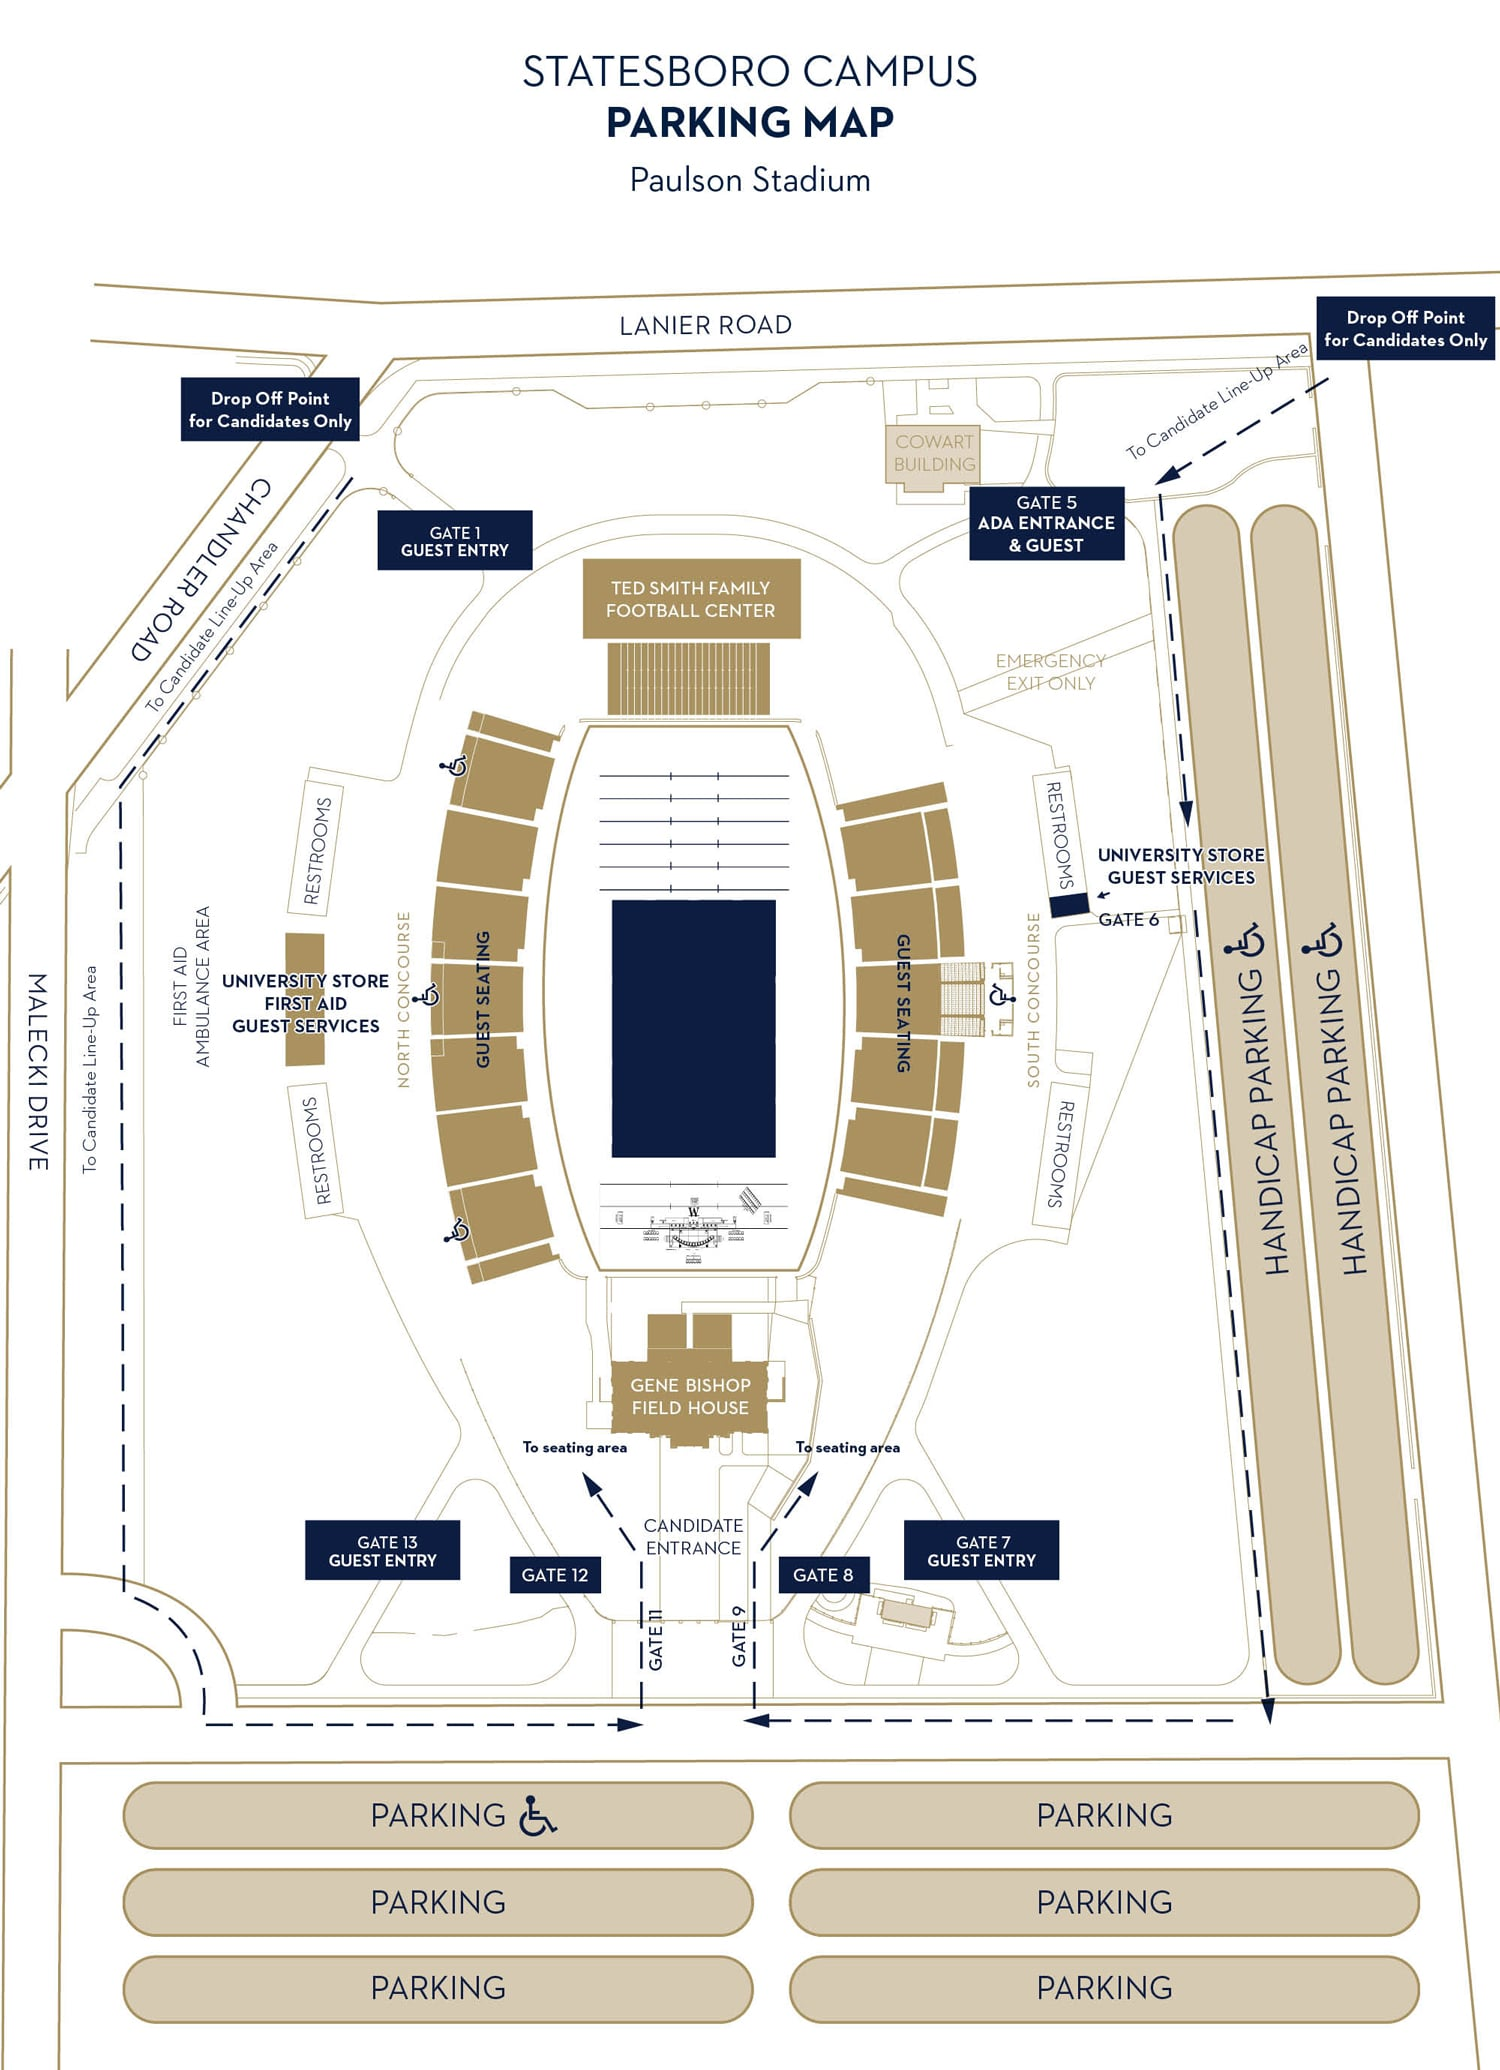 parking map for paulson stadium showing parking spaces available by the main entrance and handicap parking available on the south side of the stadium